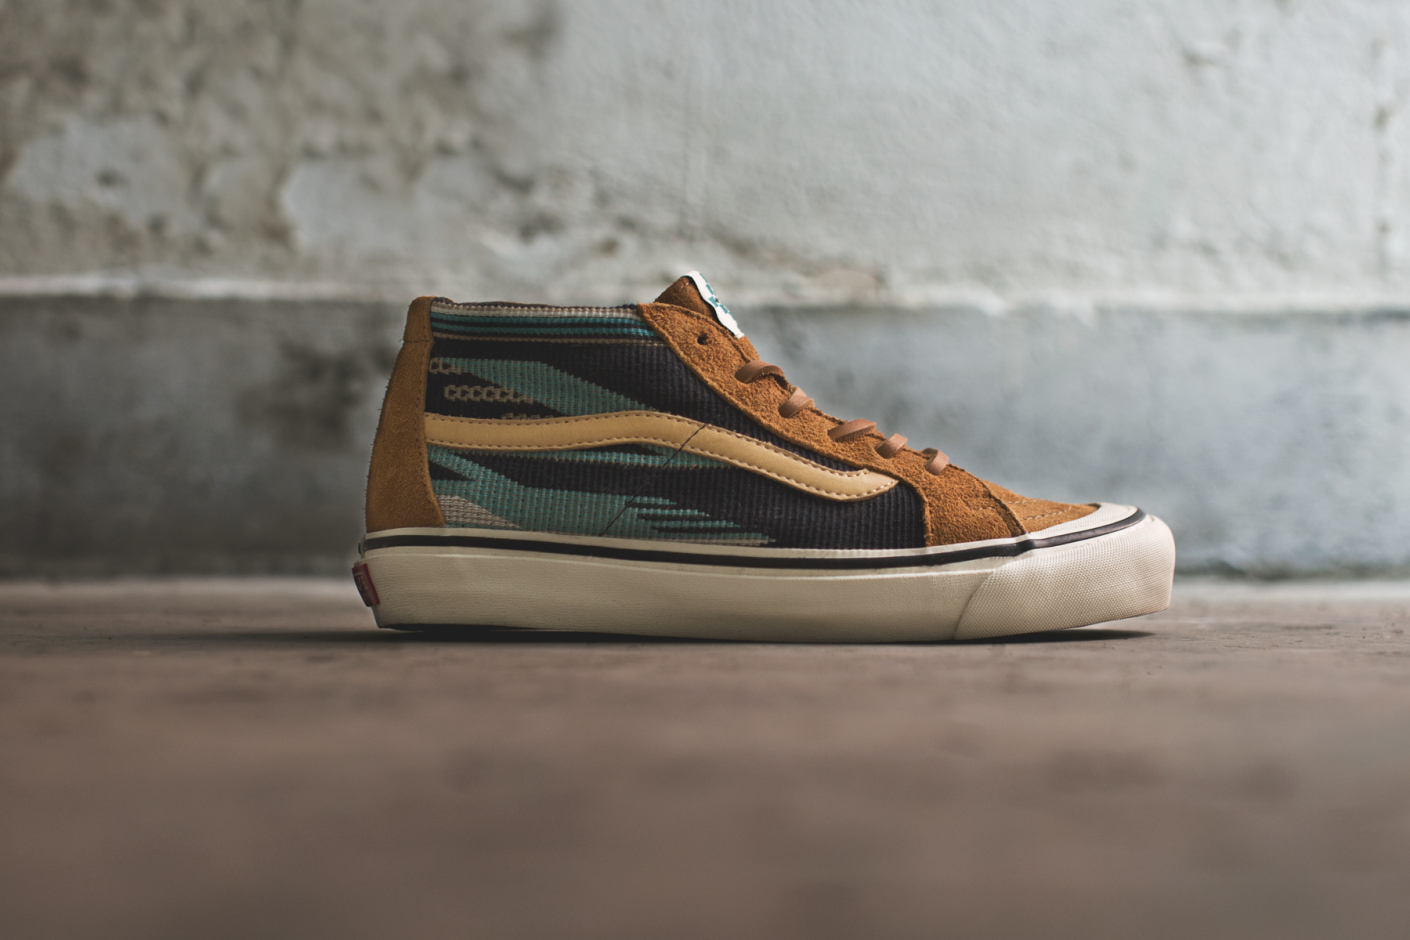 ce59e23fd88 ... Taka Hayashi and Vans Vault. The pack takes its name from the vibrant  Chimayo fabric featured on the quarter panels on the TH Sk8-mid LX  silhouette.